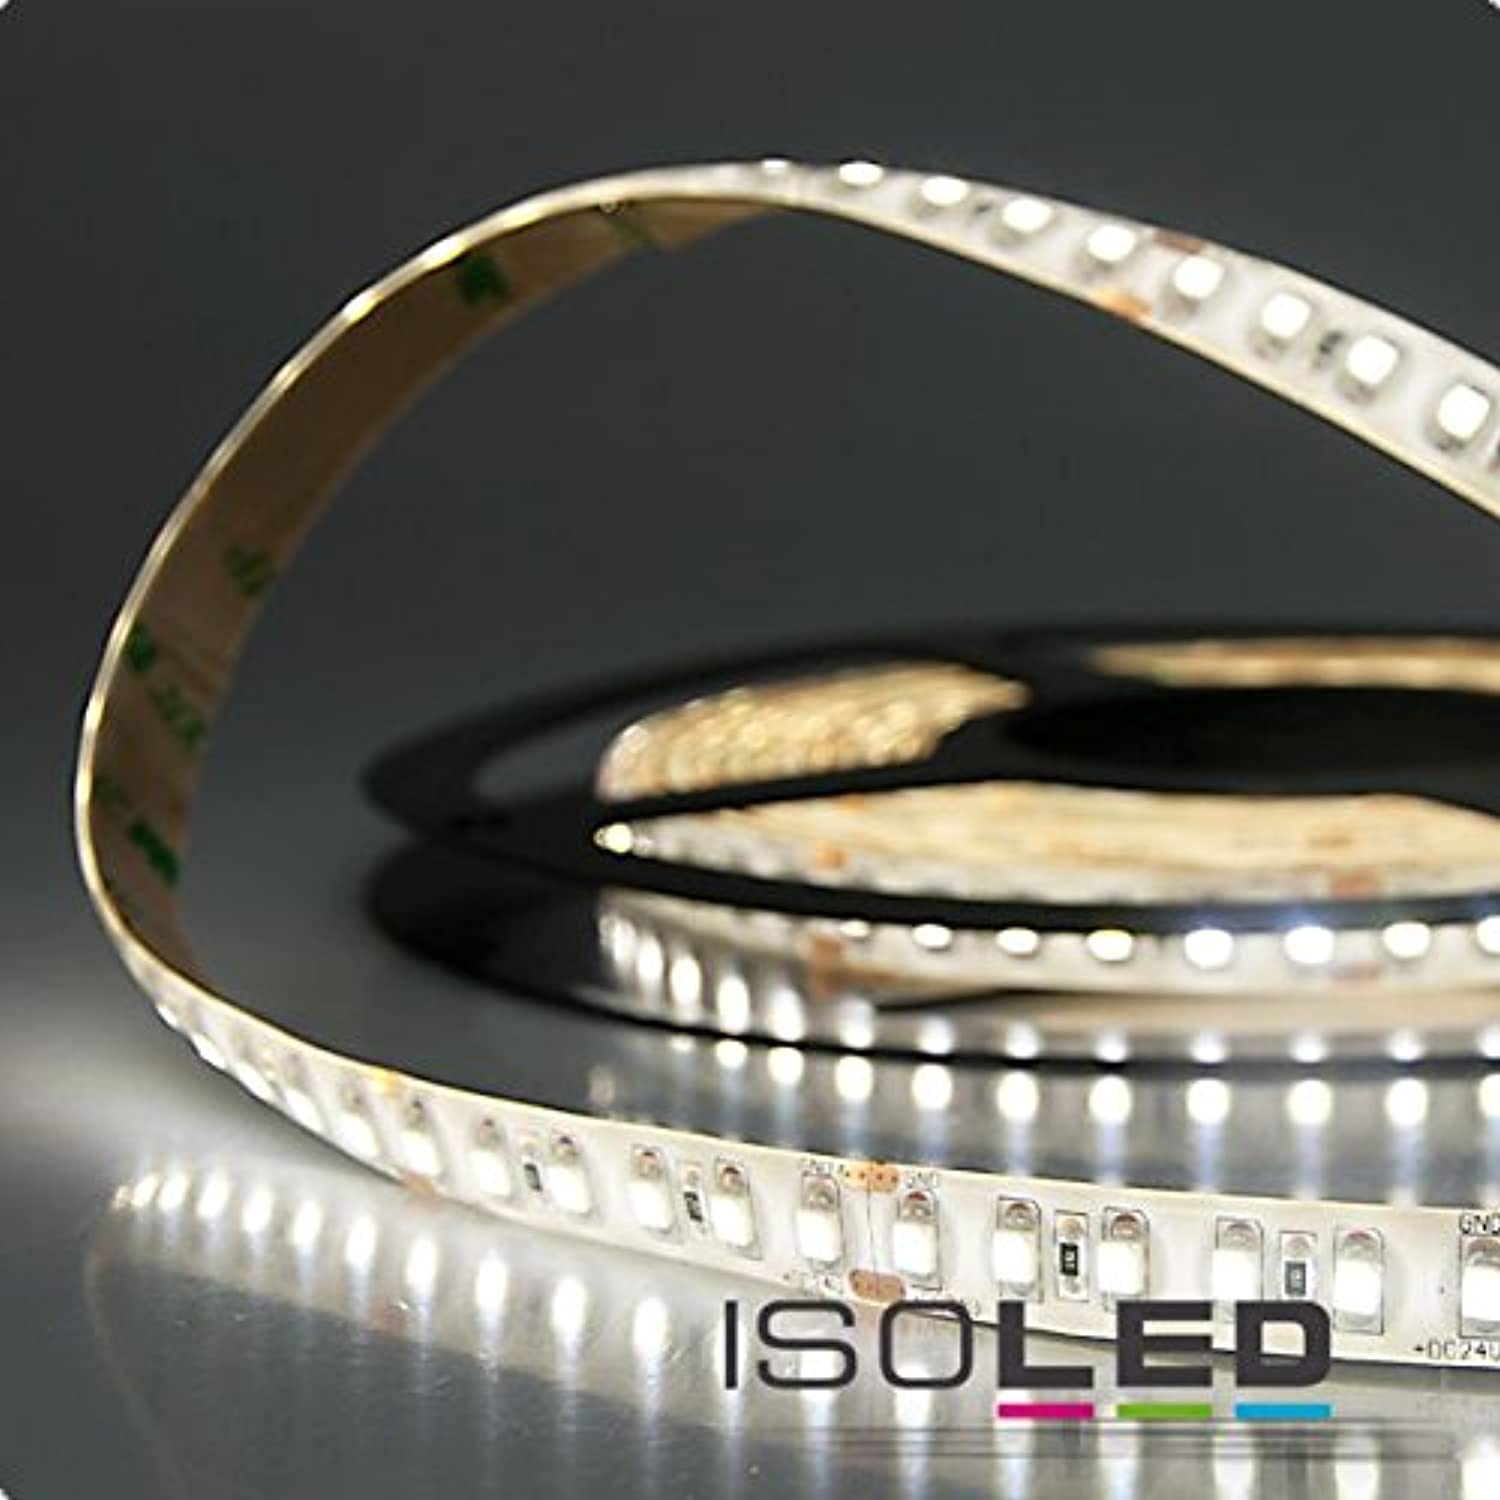 Isoled Marken LED Strip IP66, 24V, 9,6Watt m, wasserfest, 4500Kelvin, neutralwei, 600lm m, CRI89, dimmbar, flickerfree